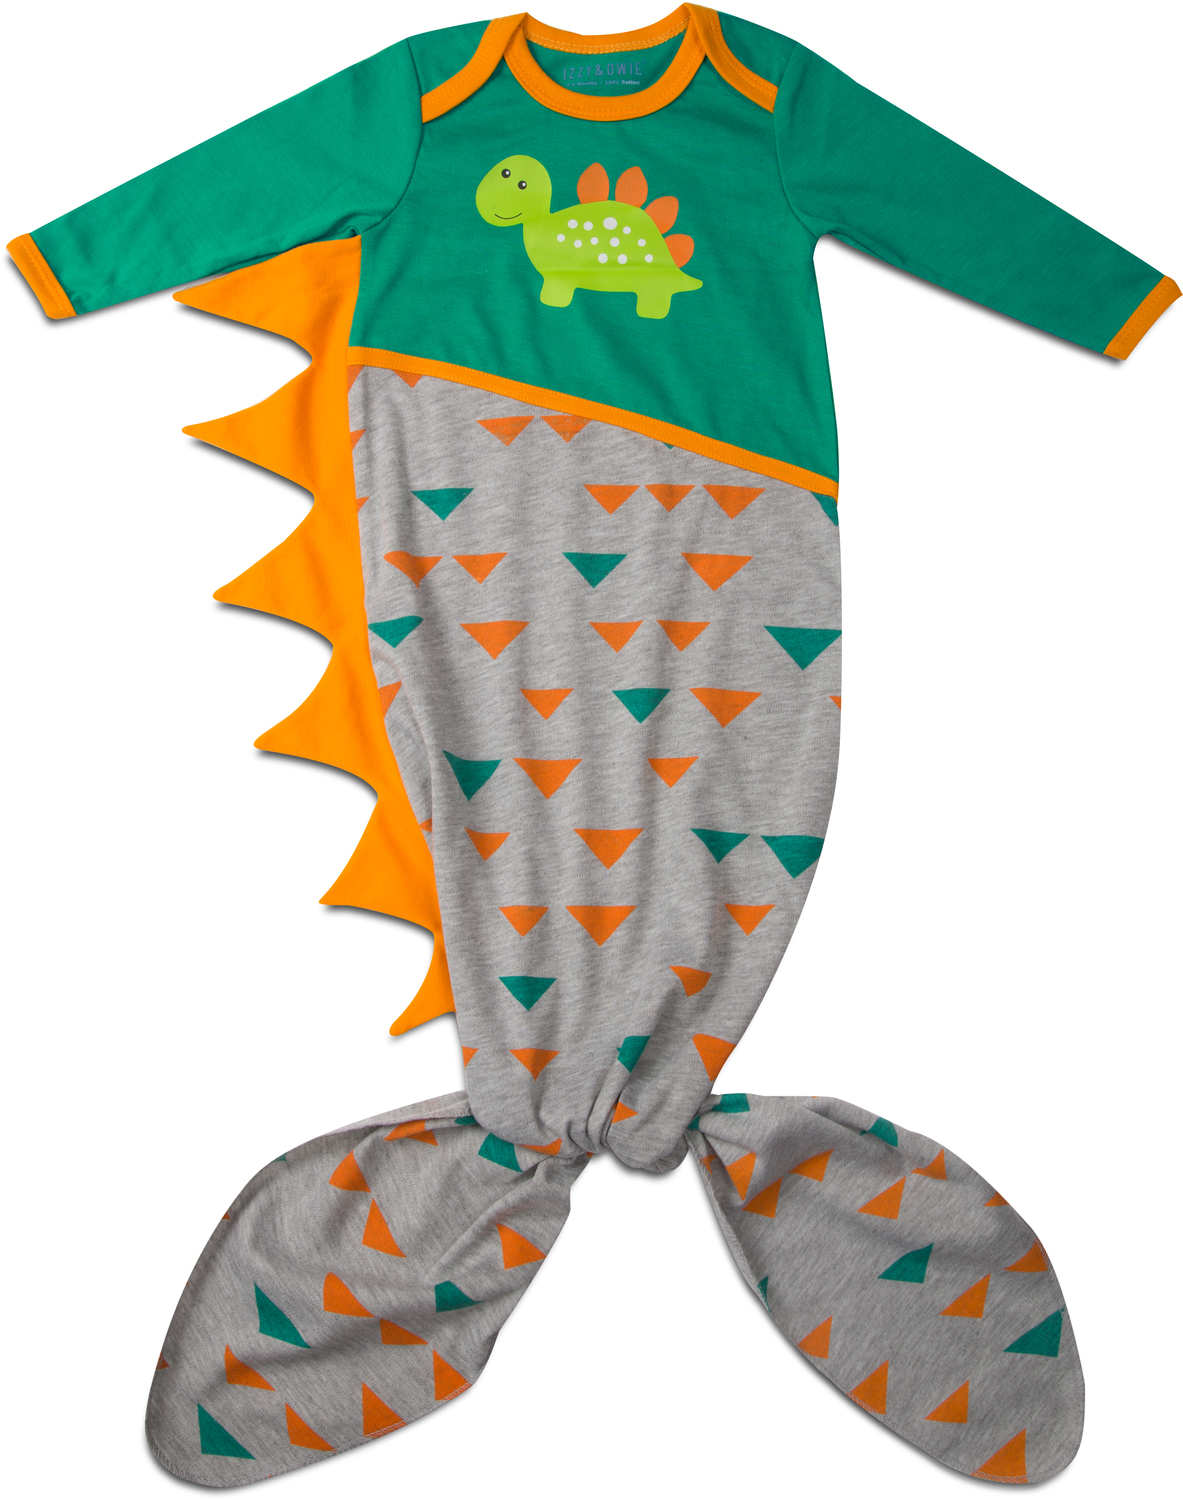 Teal and Gray Dino by Izzy & Owie - Teal and Gray Dino - 0-9 Months Knotted Onesie